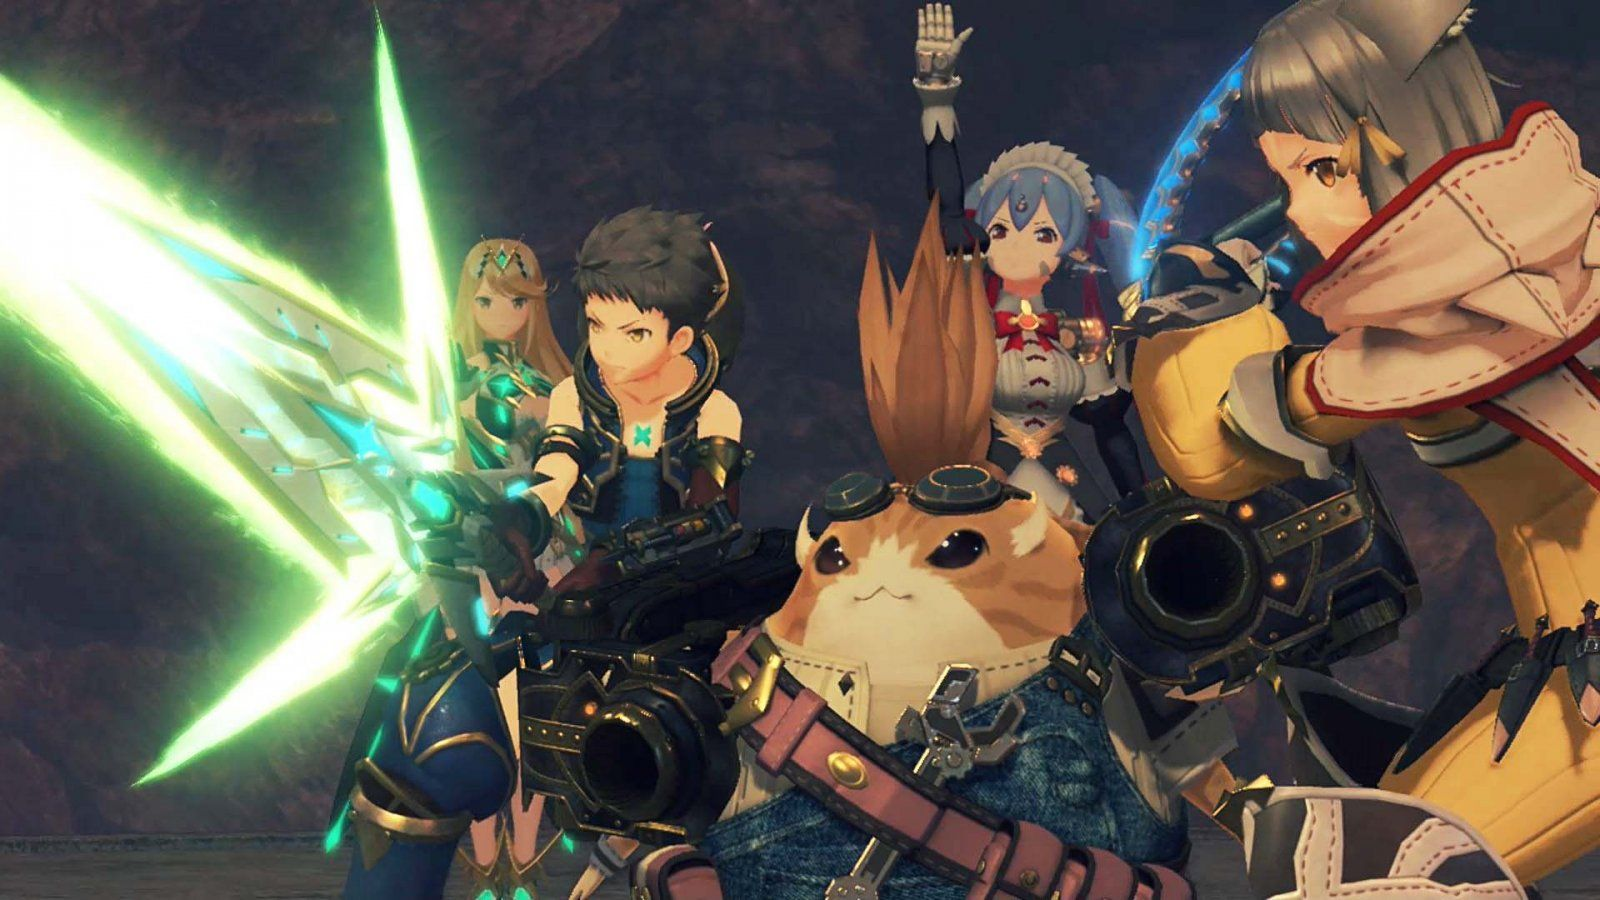 Xenoblade Chronicles 2 Update 1 3 Game Plus Mode And Blade